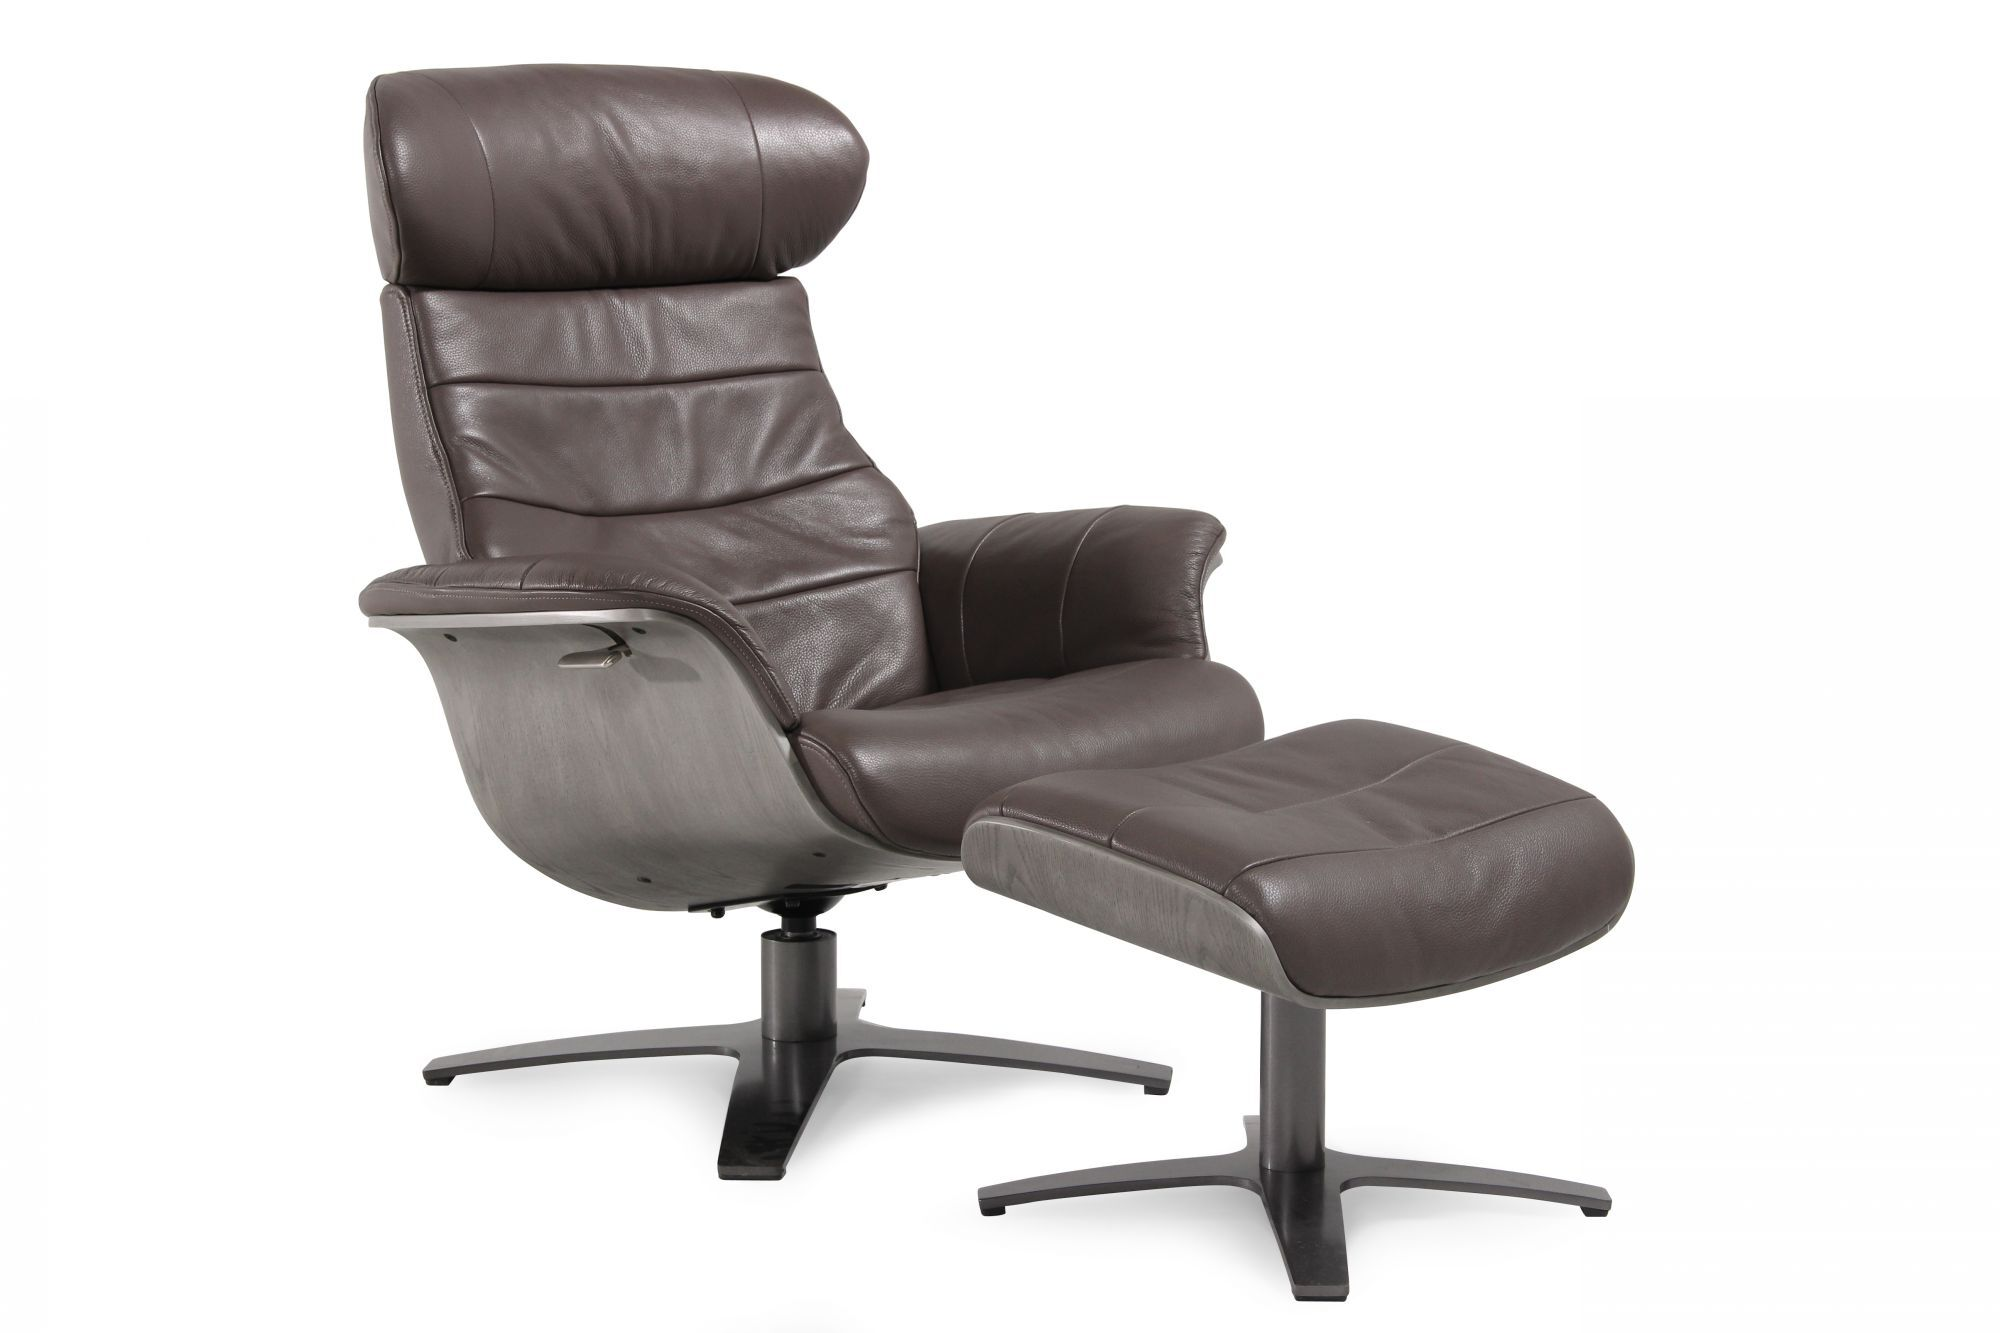 Gray Recliner Chair Boulevard Grey Leather Swivel Recliner And Ottoman